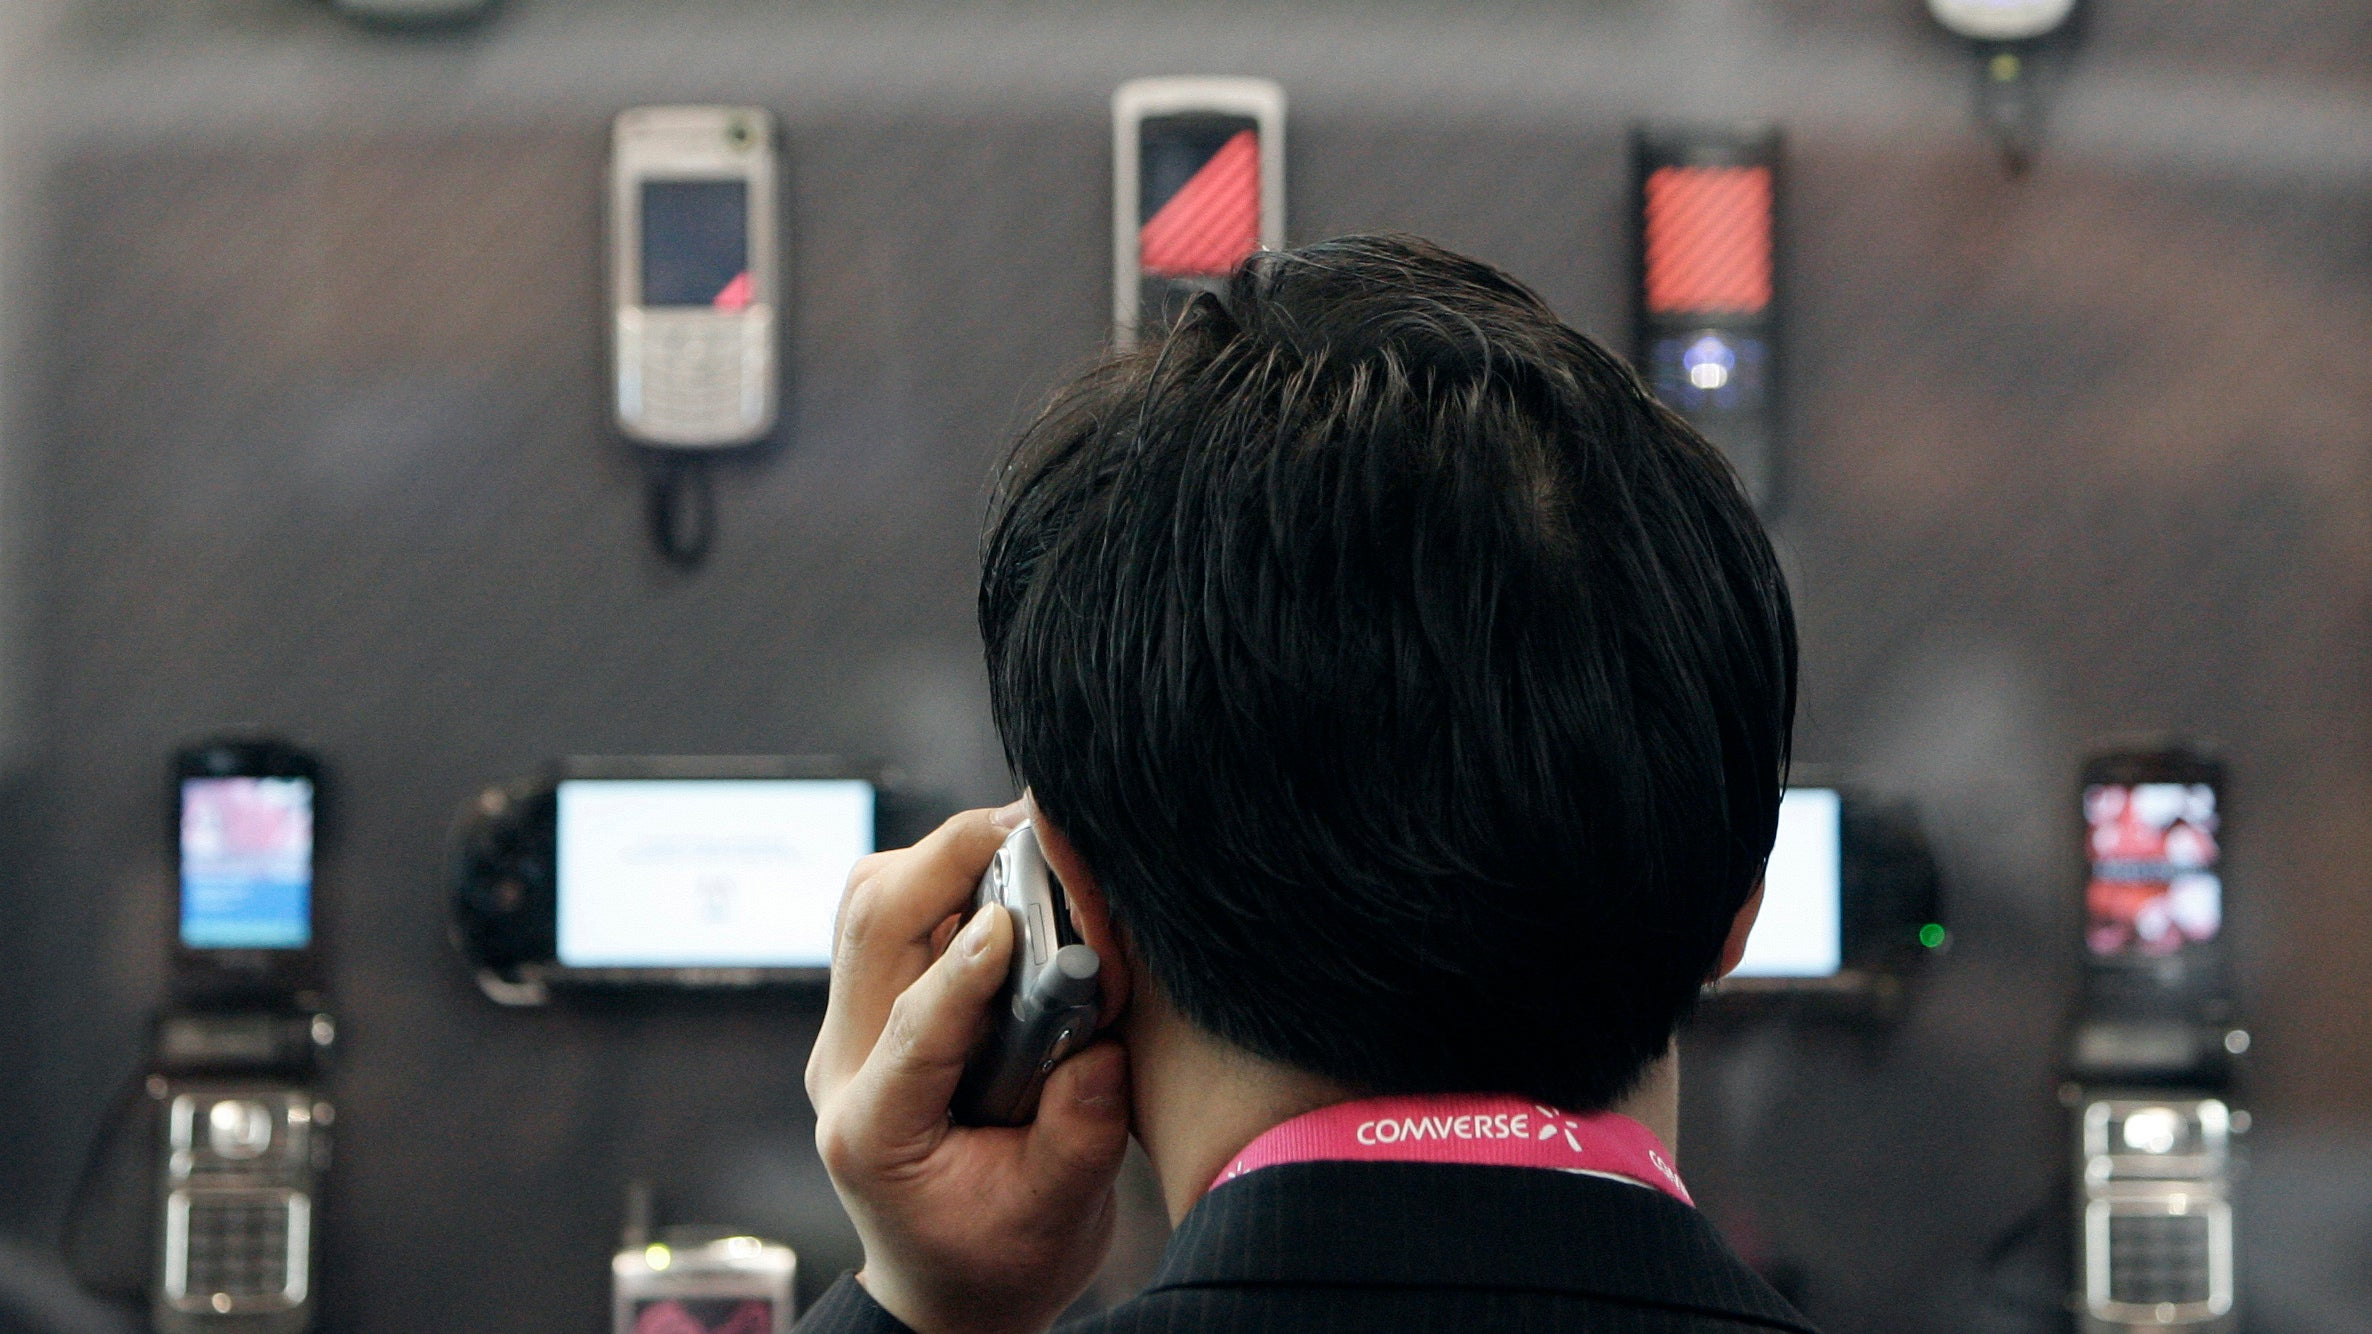 MWC 2016 Preview: What Smartphones and Other Goodies to Expect